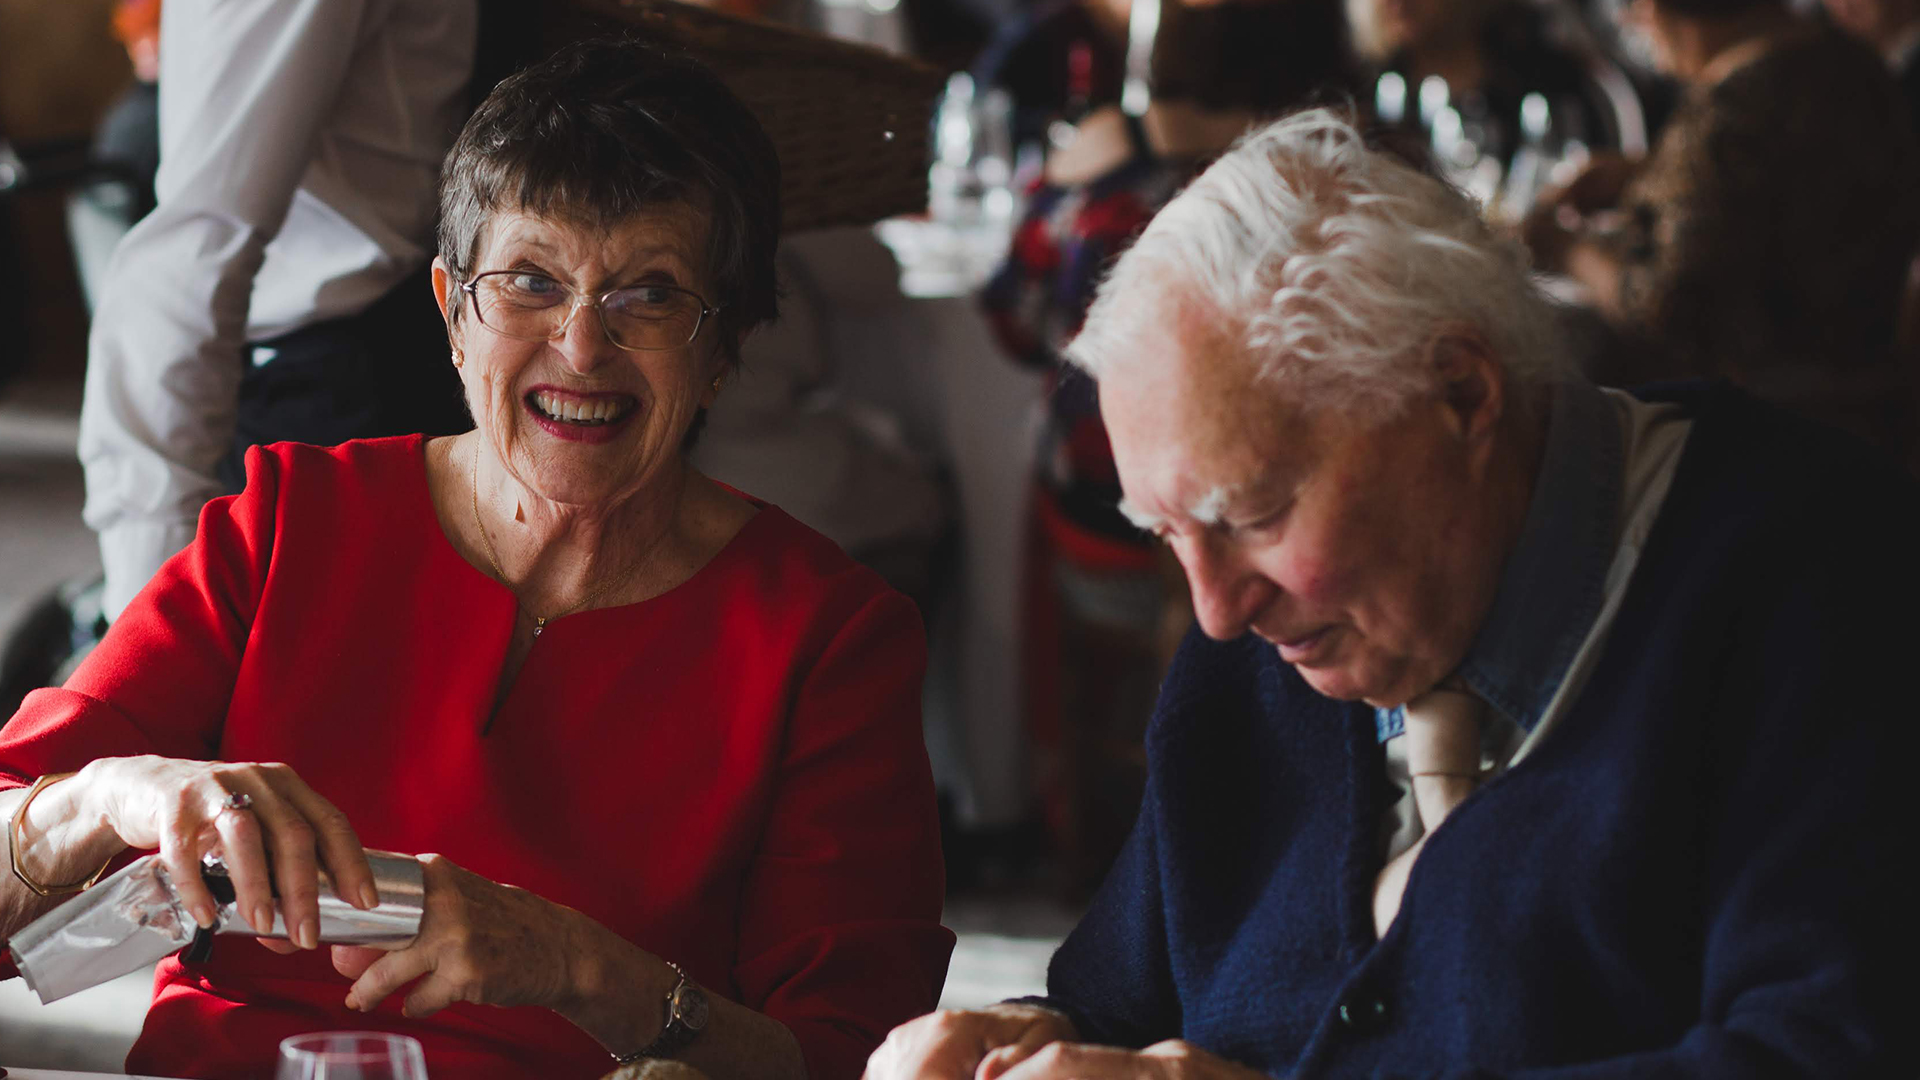 Photo of Elderly couple eating dinner